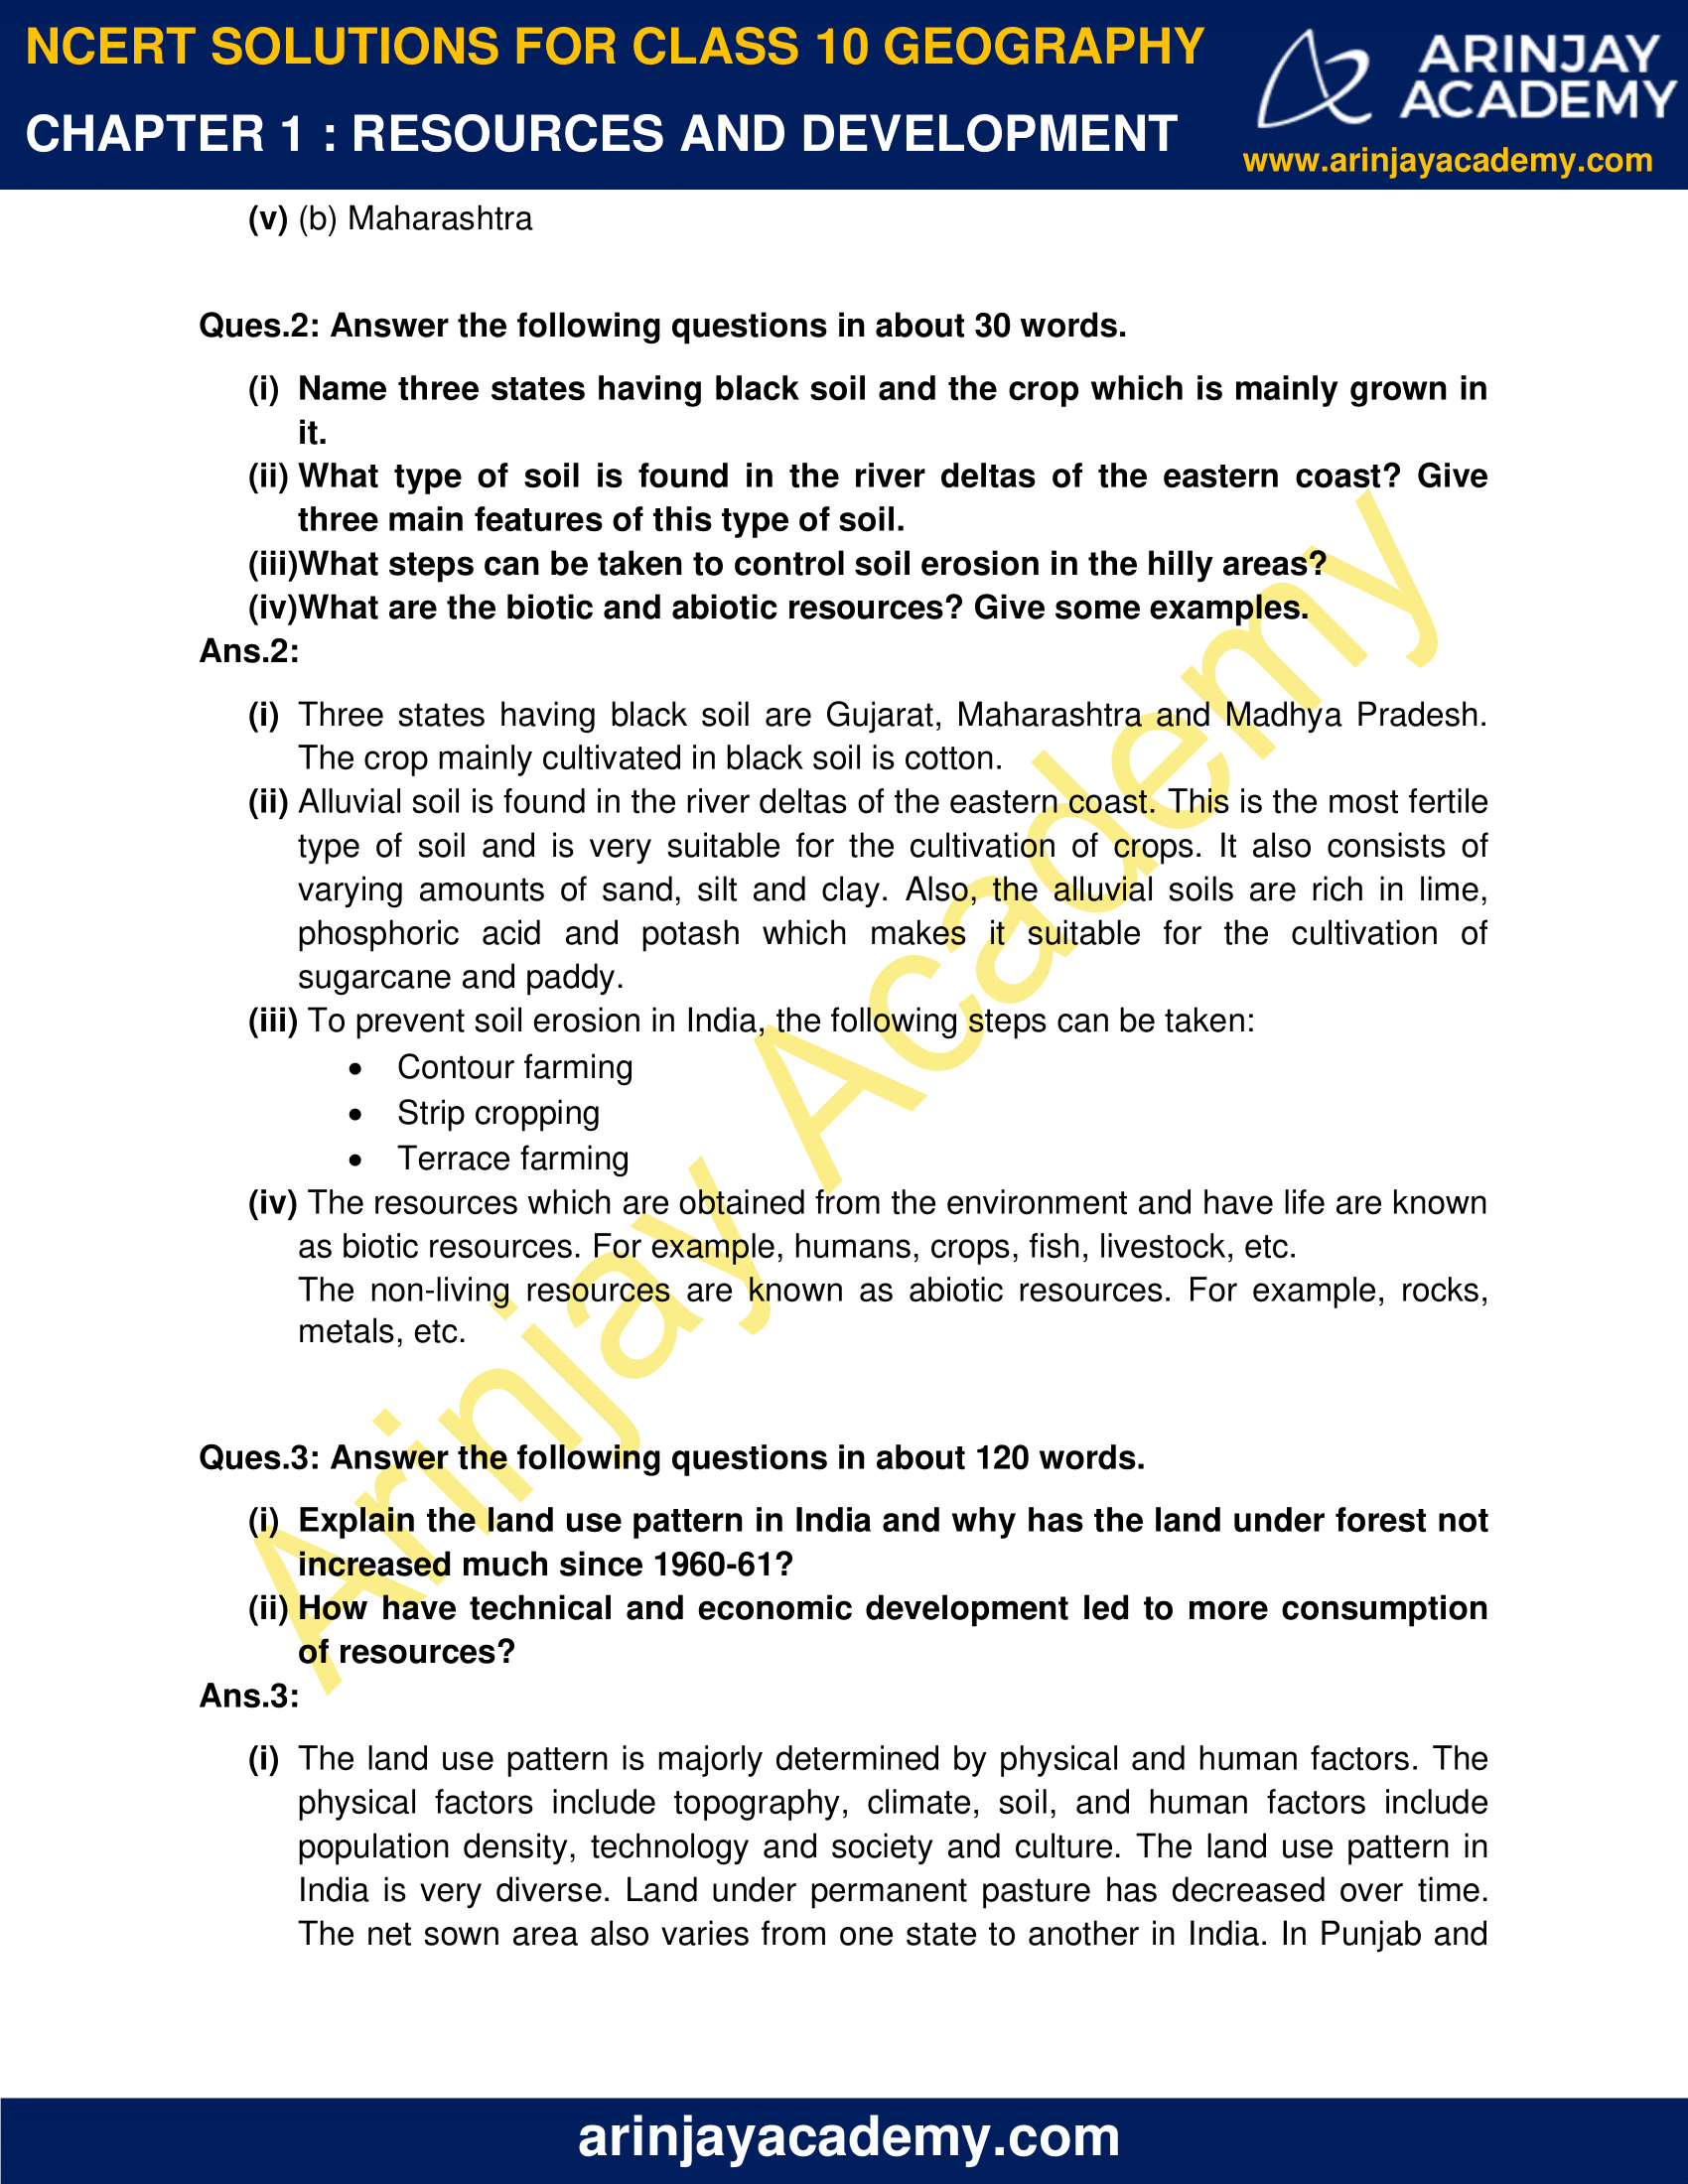 NCERT Solutions for Class 10 Geography Chapter 1 image 2